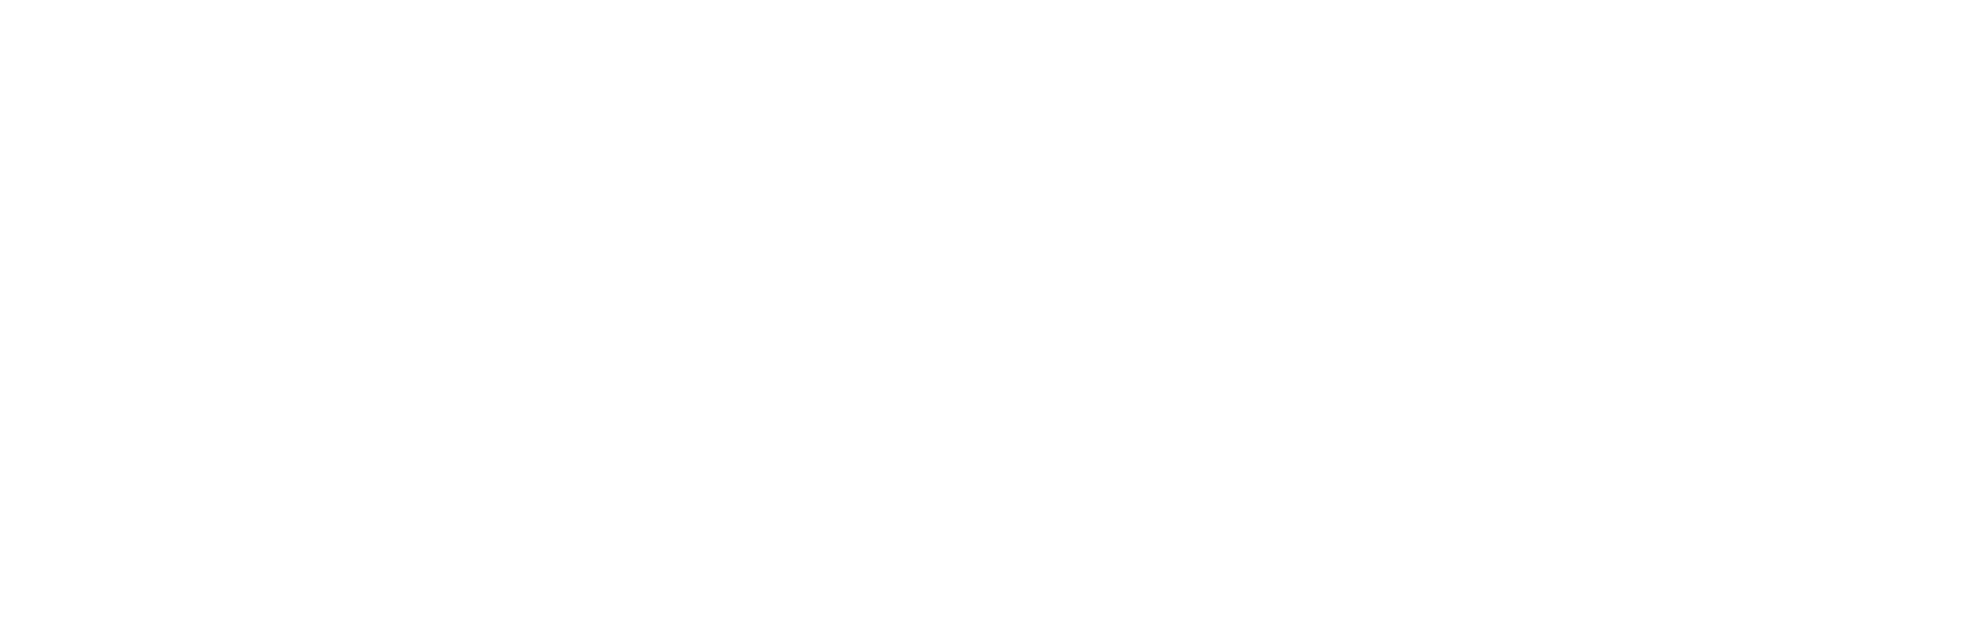 Second Momentum